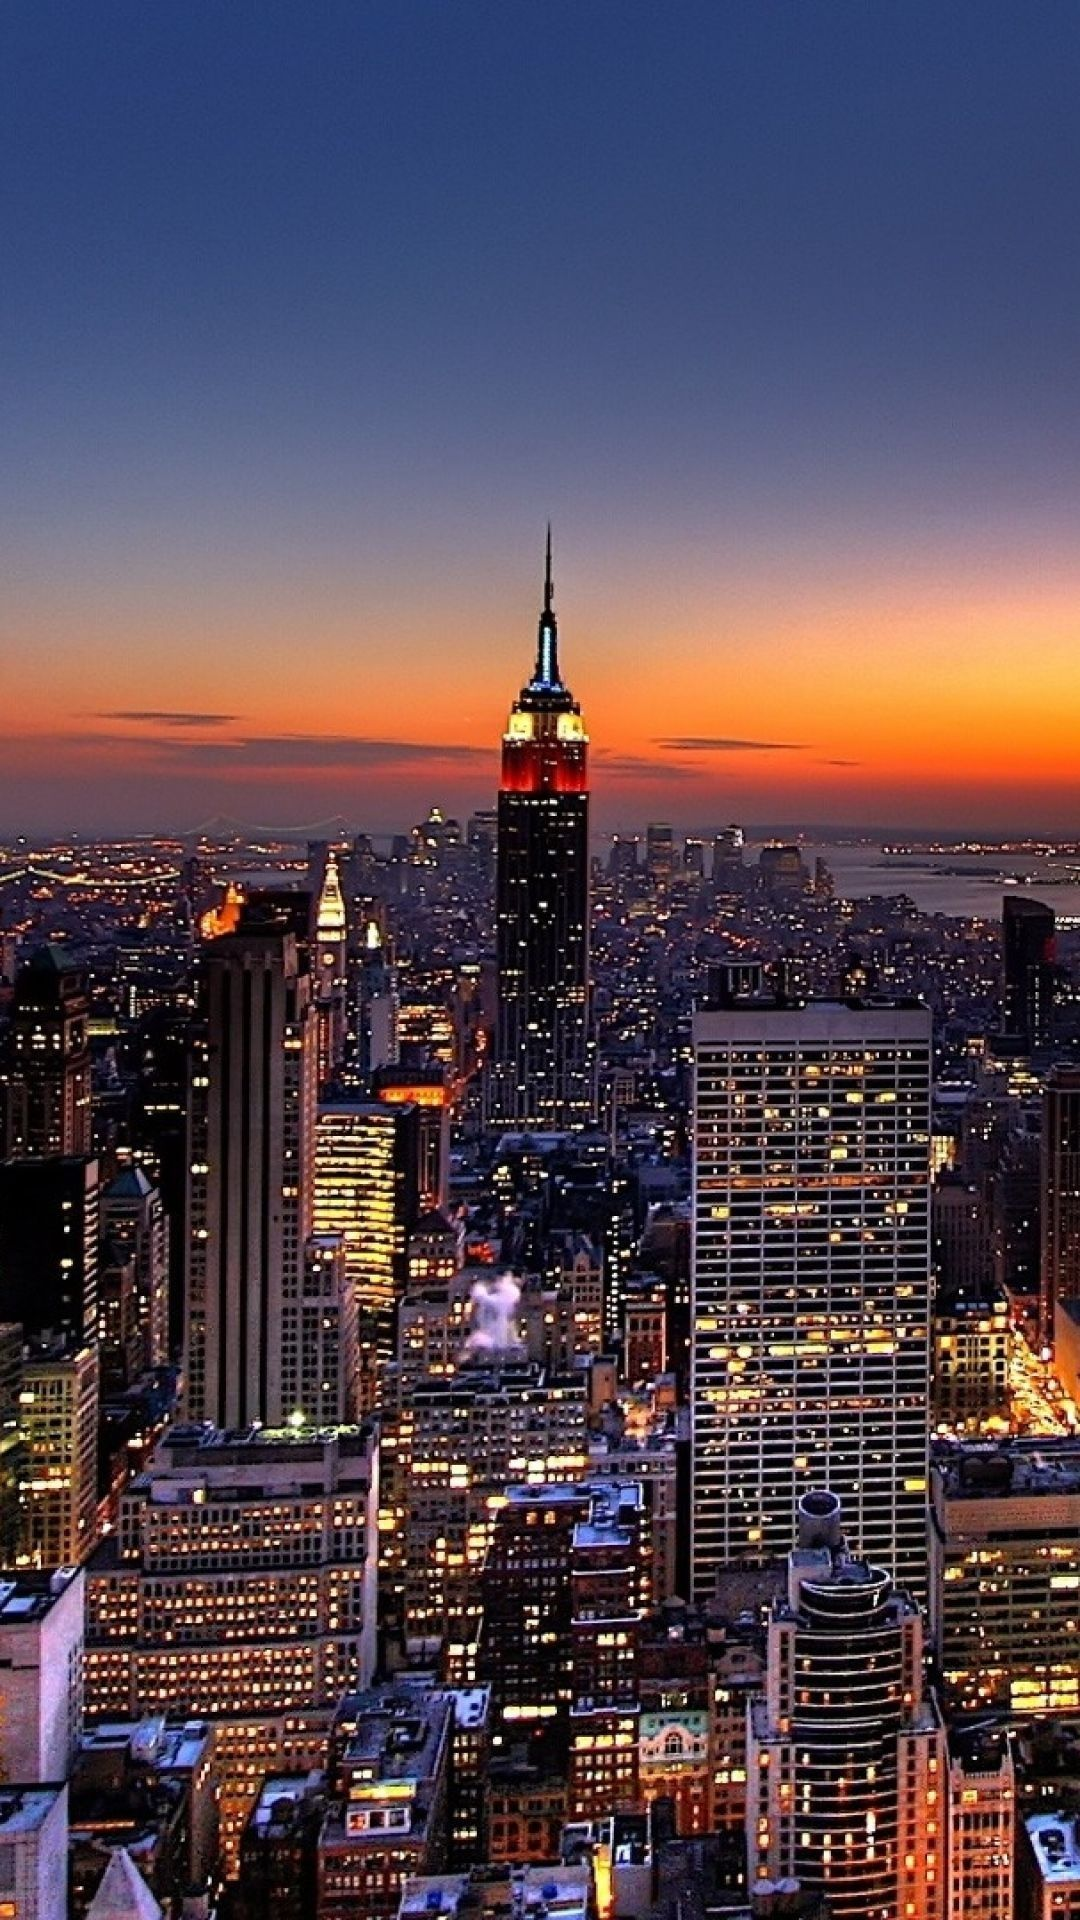 Pin By Maria Bantog On For Picsart New York Wallpaper City Wallpaper New York Iphone Wallpaper